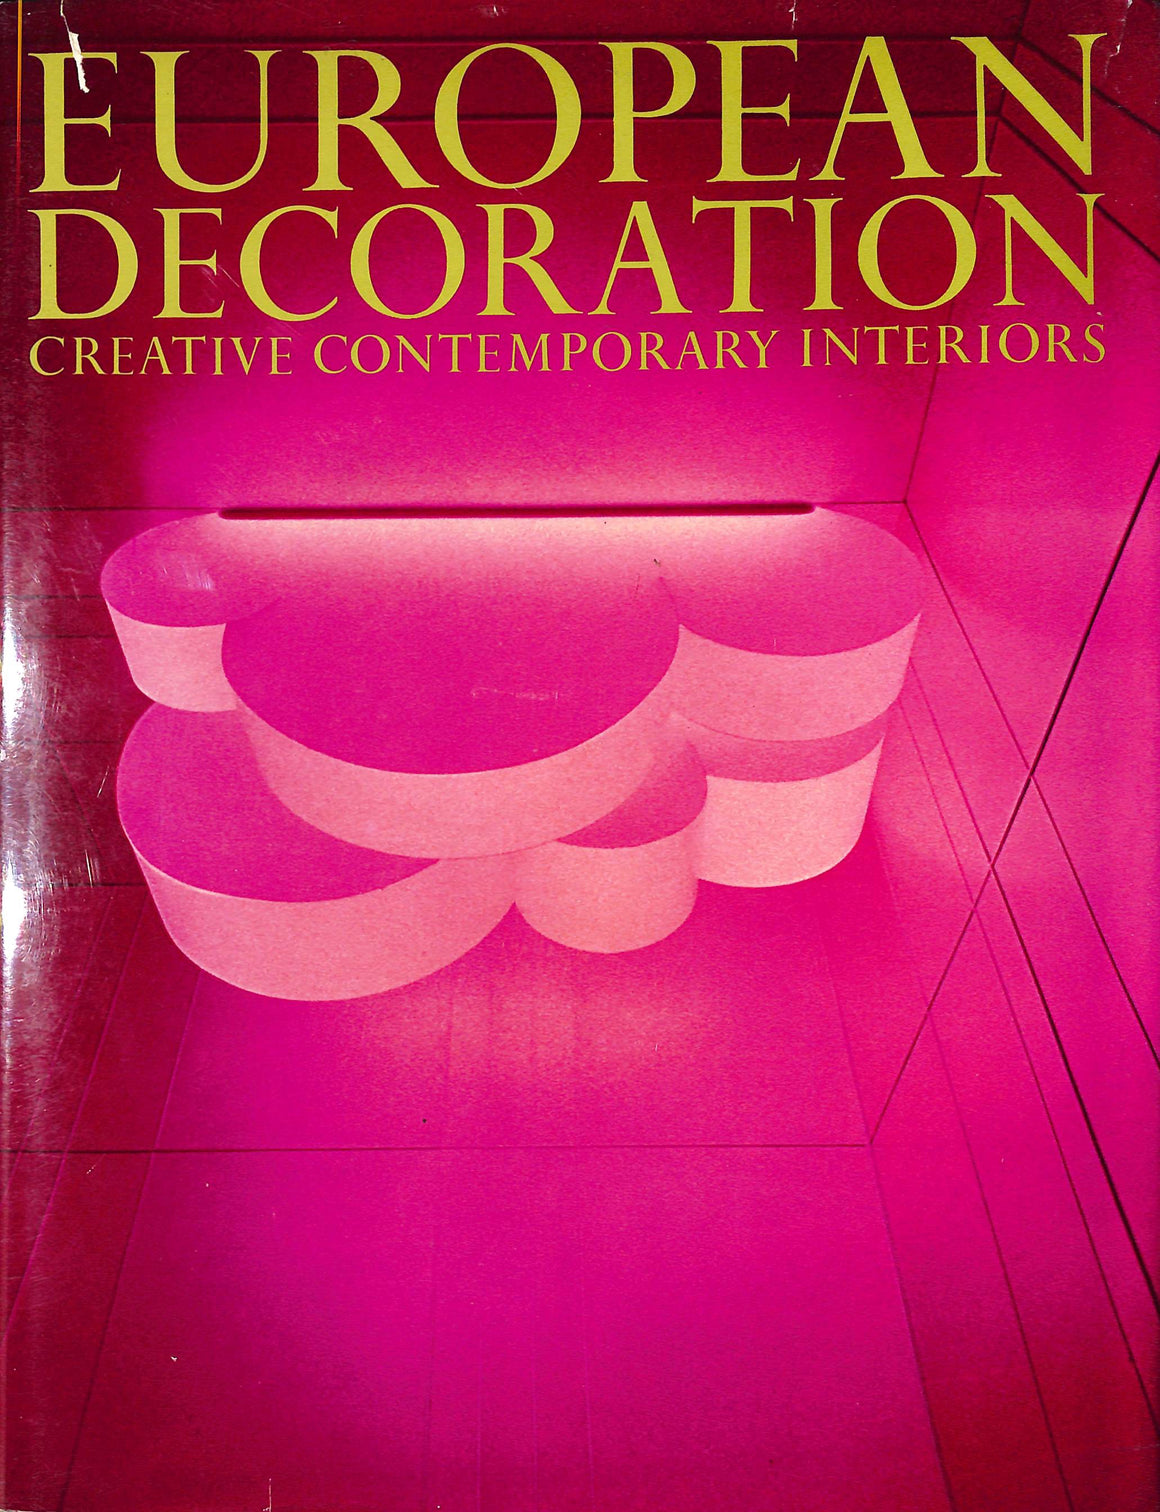 """European Decoration: Creative Contemporary Interiors"" Bernier, Georges and Rosamond [edited by]"